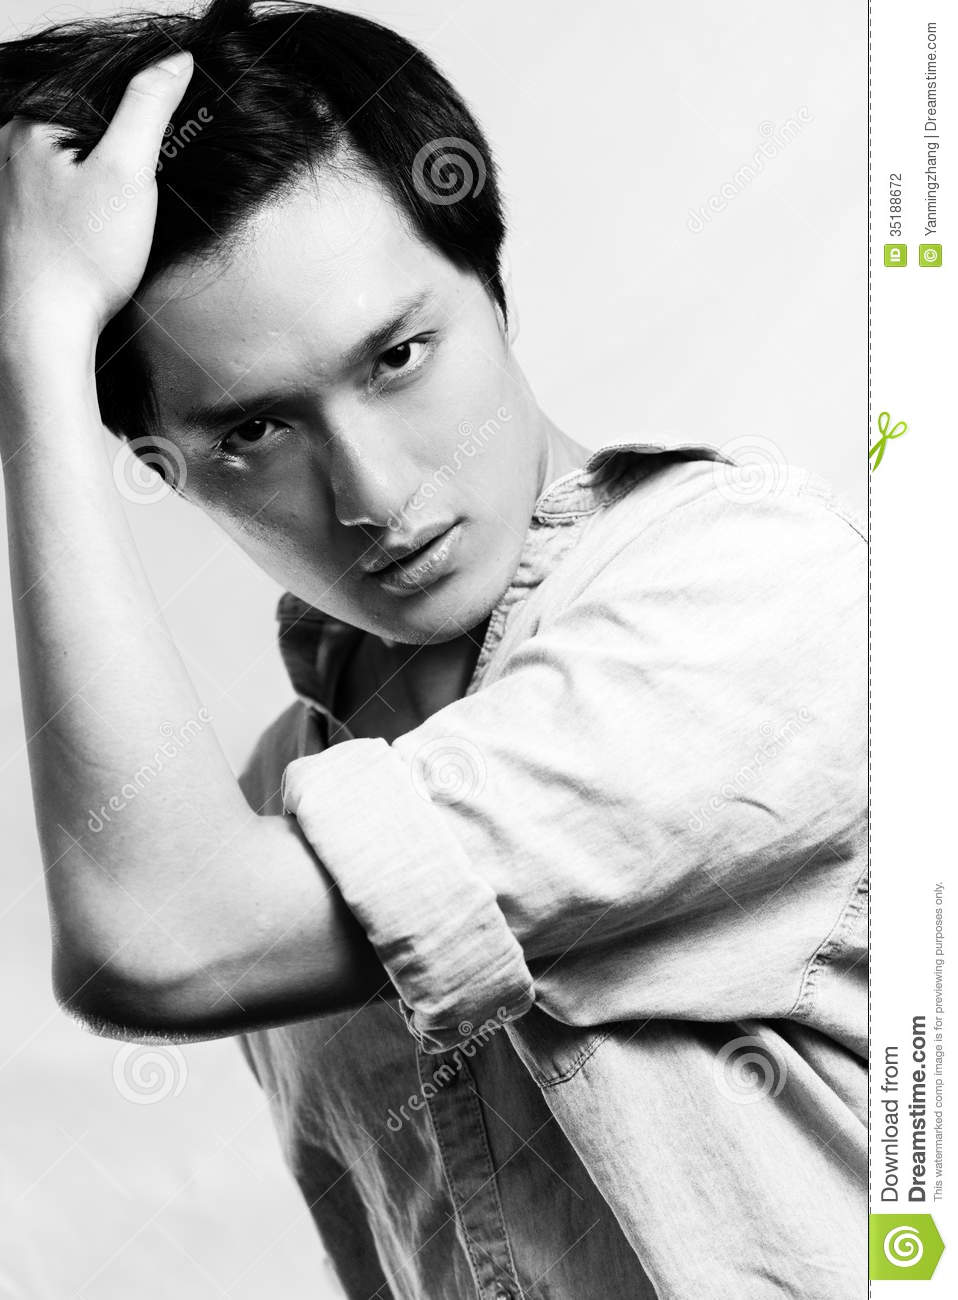 Fashion pose by male model stock photo  Image of blue - 35188672